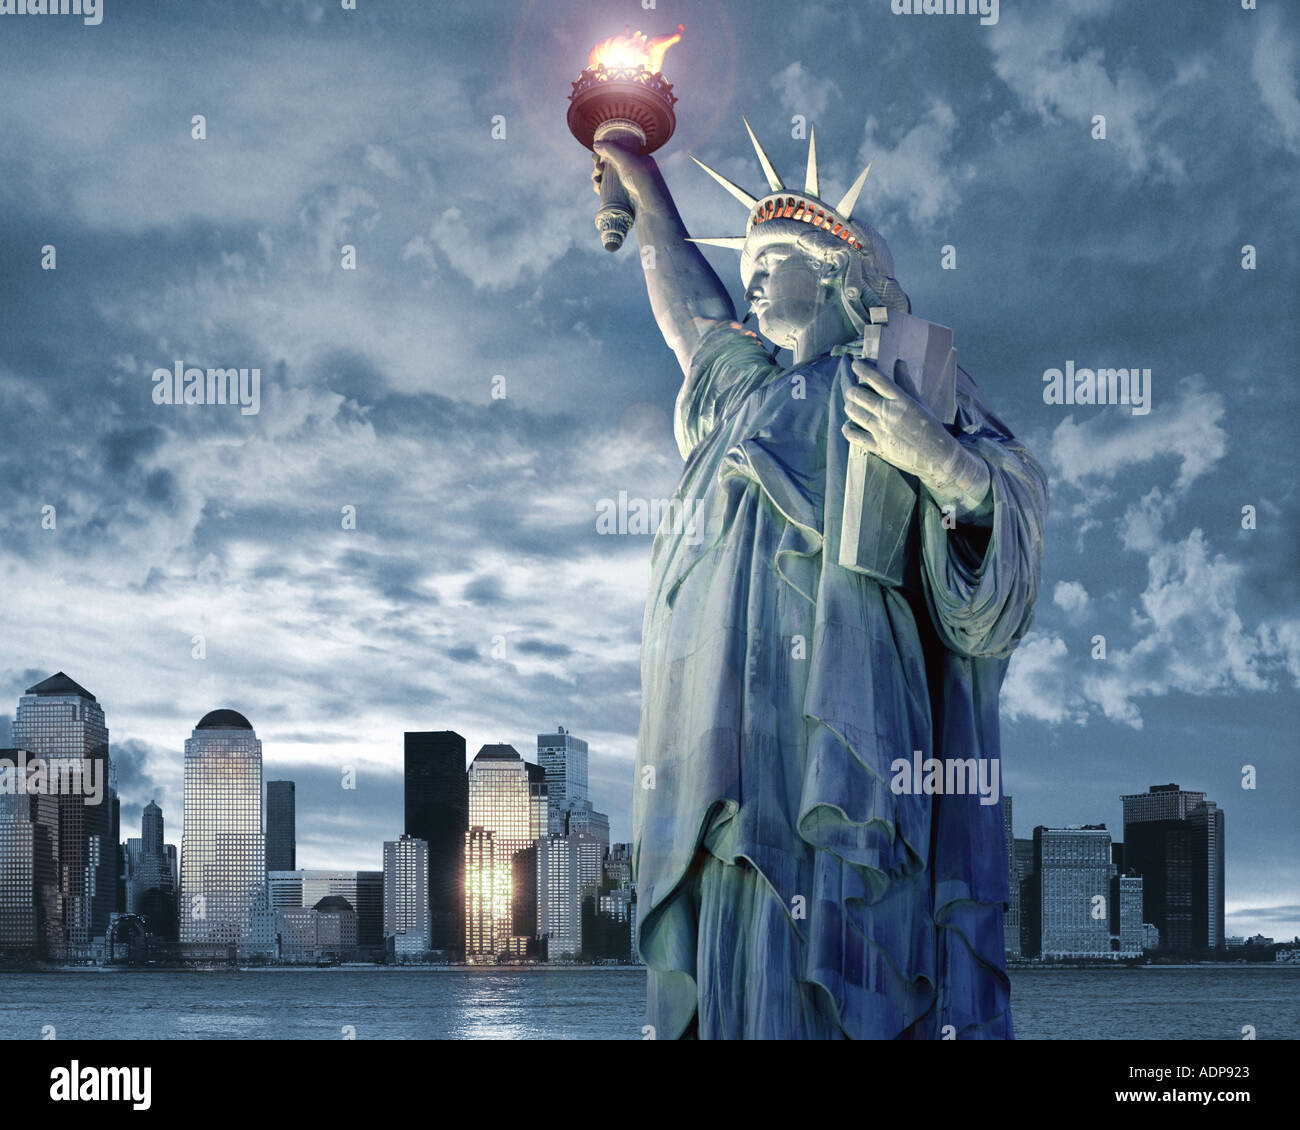 USA - NEW YORK : Travel Concept Photo Stock